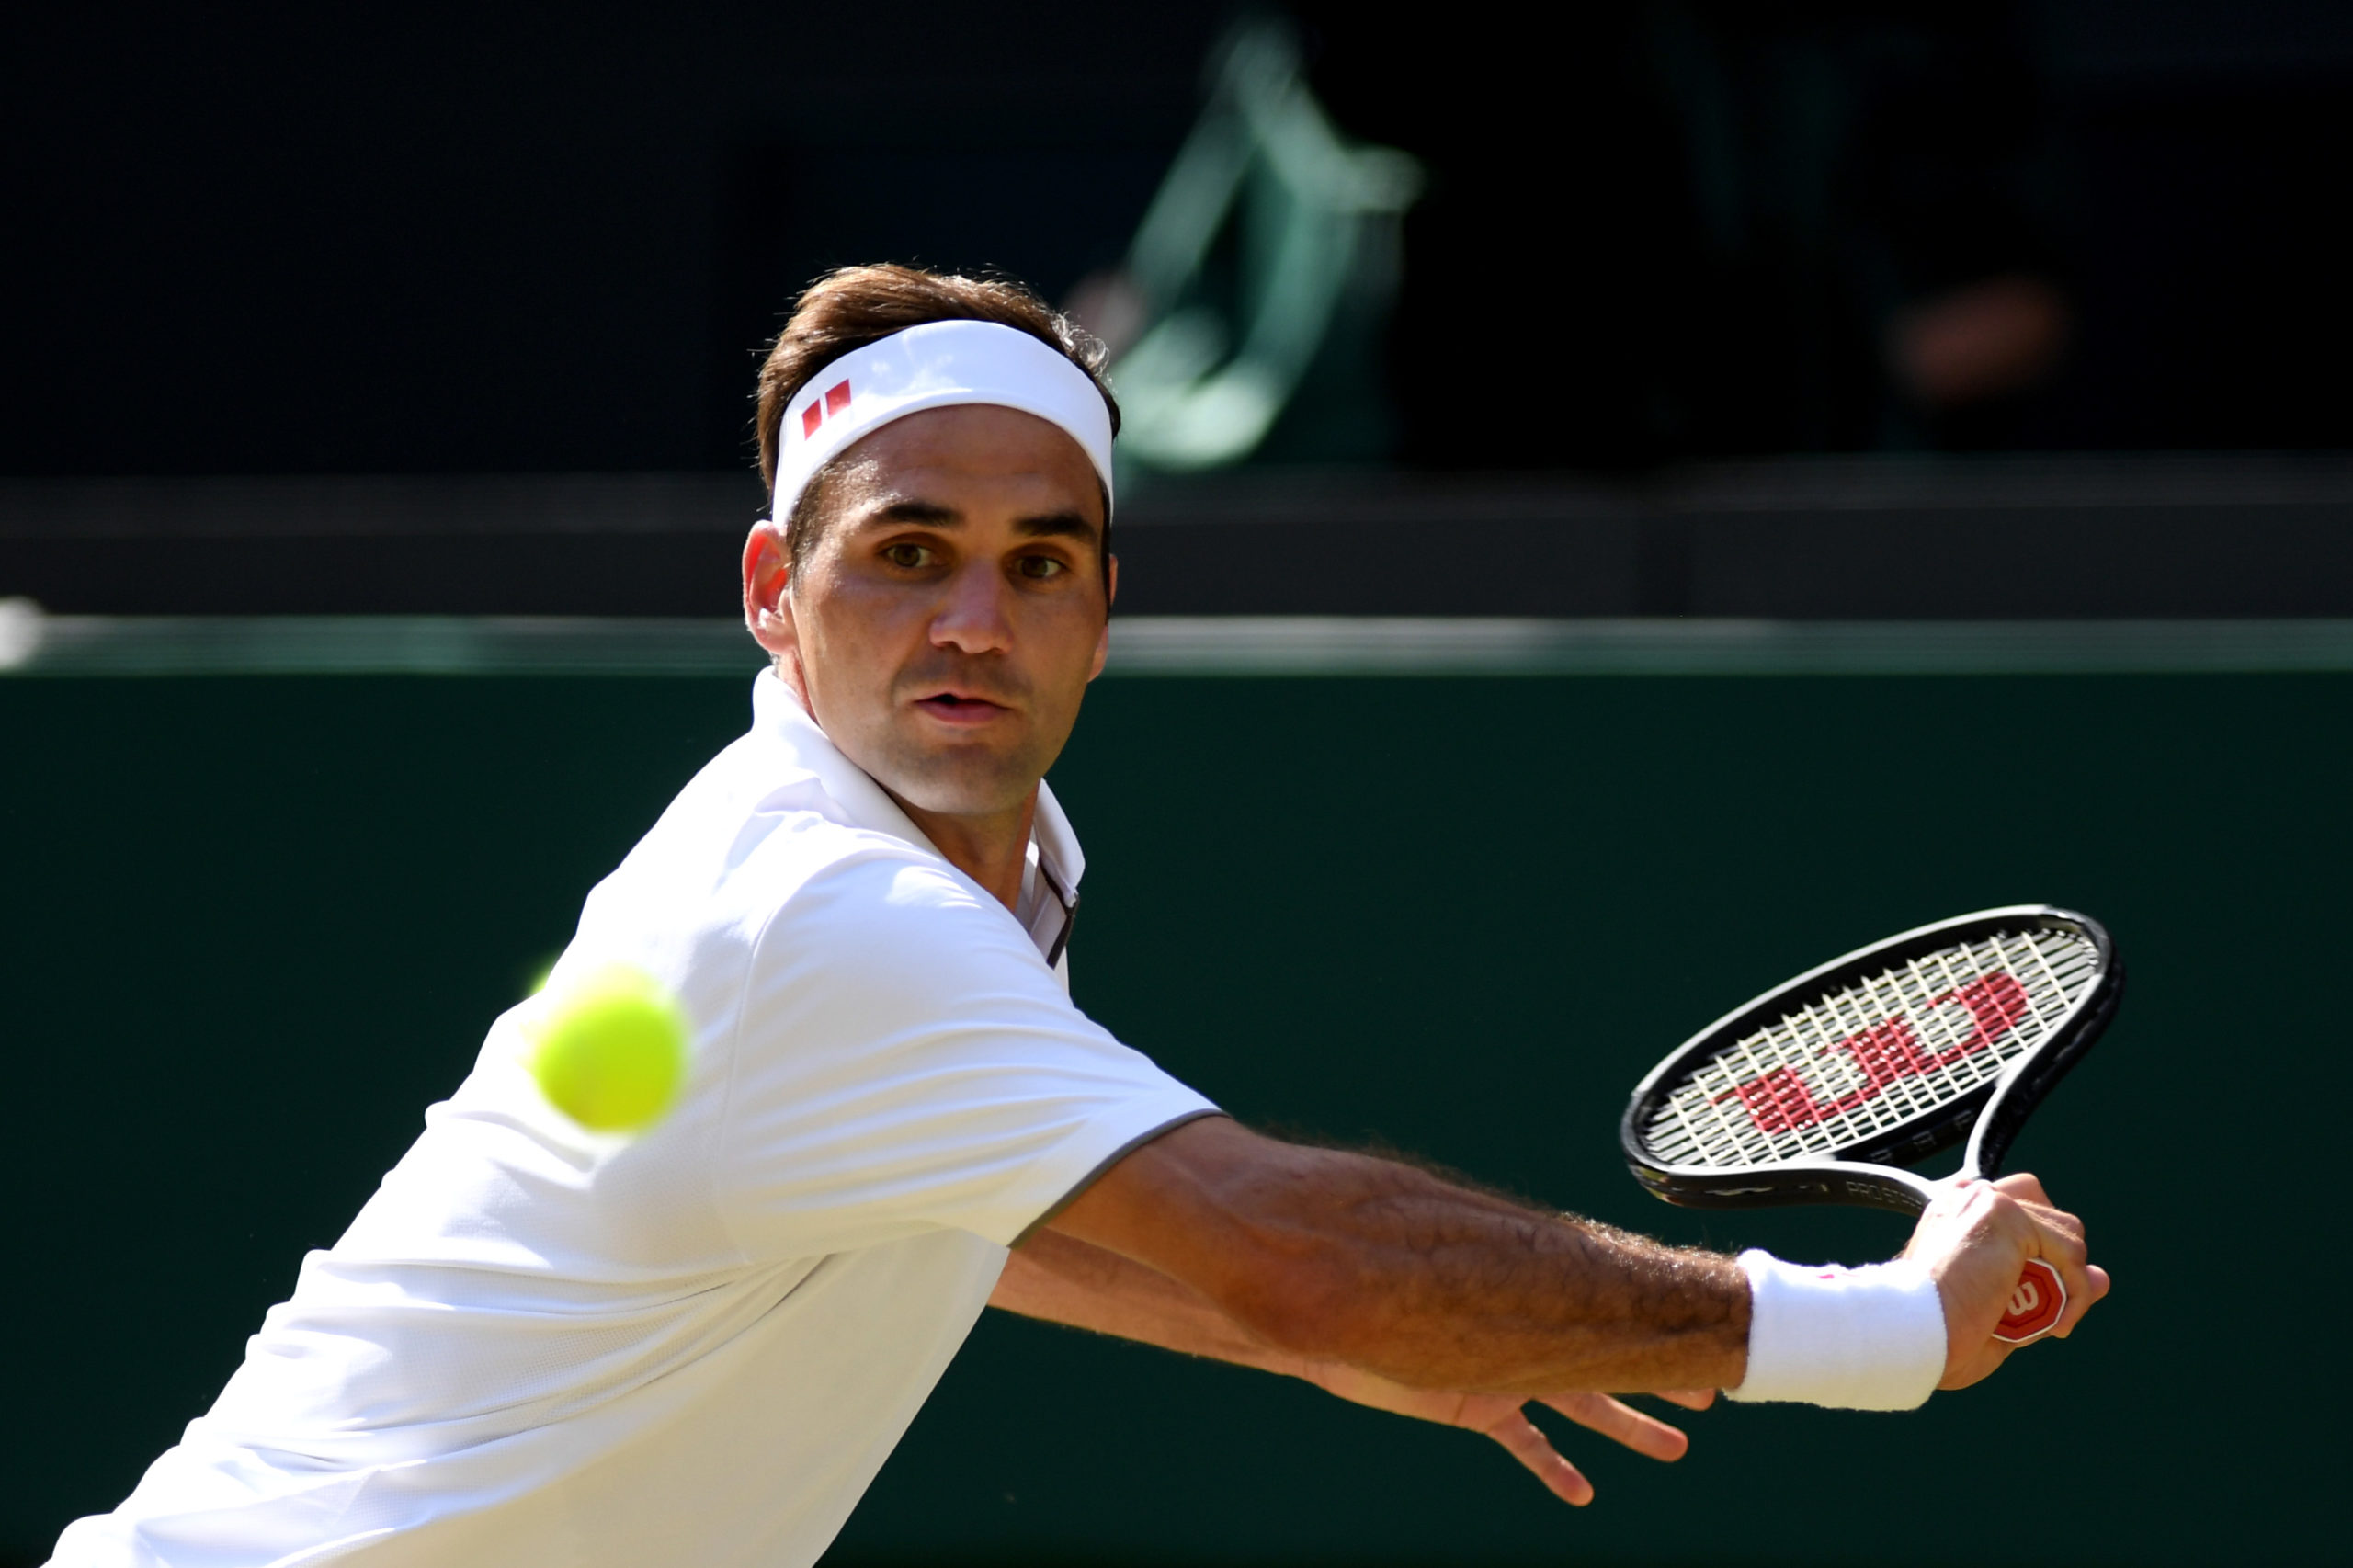 Roger Federer insegnante di Baby George